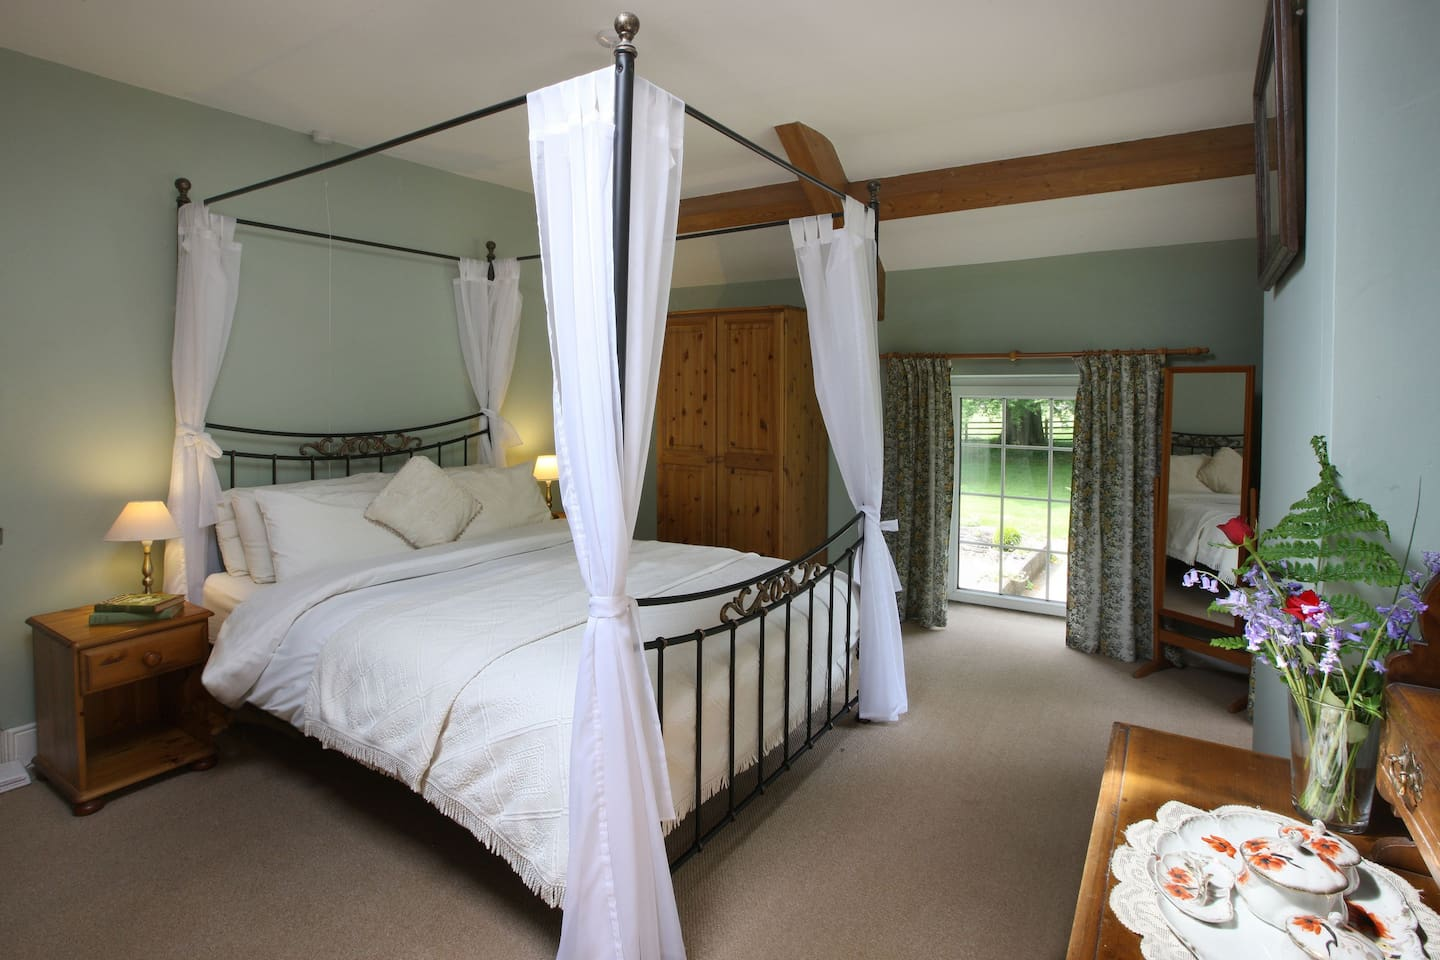 Four Poster Bed in Master Bedroom